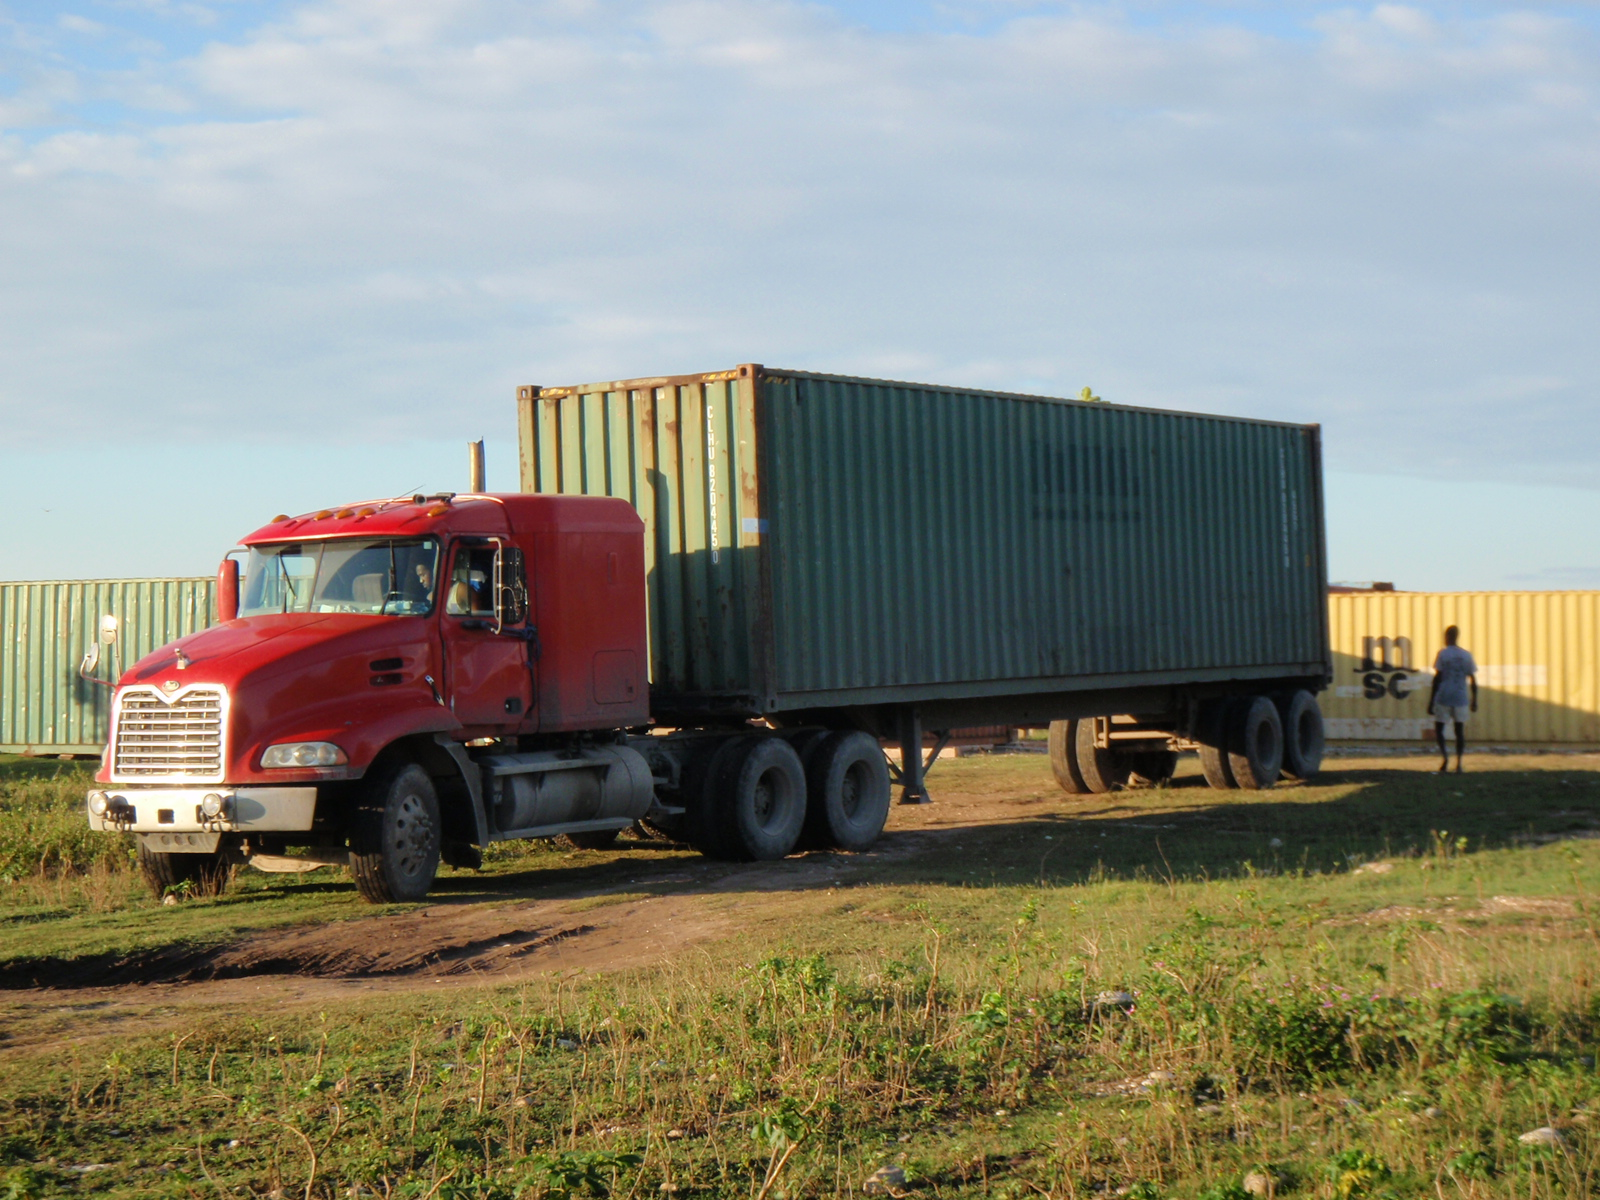 Our Container Arrived!